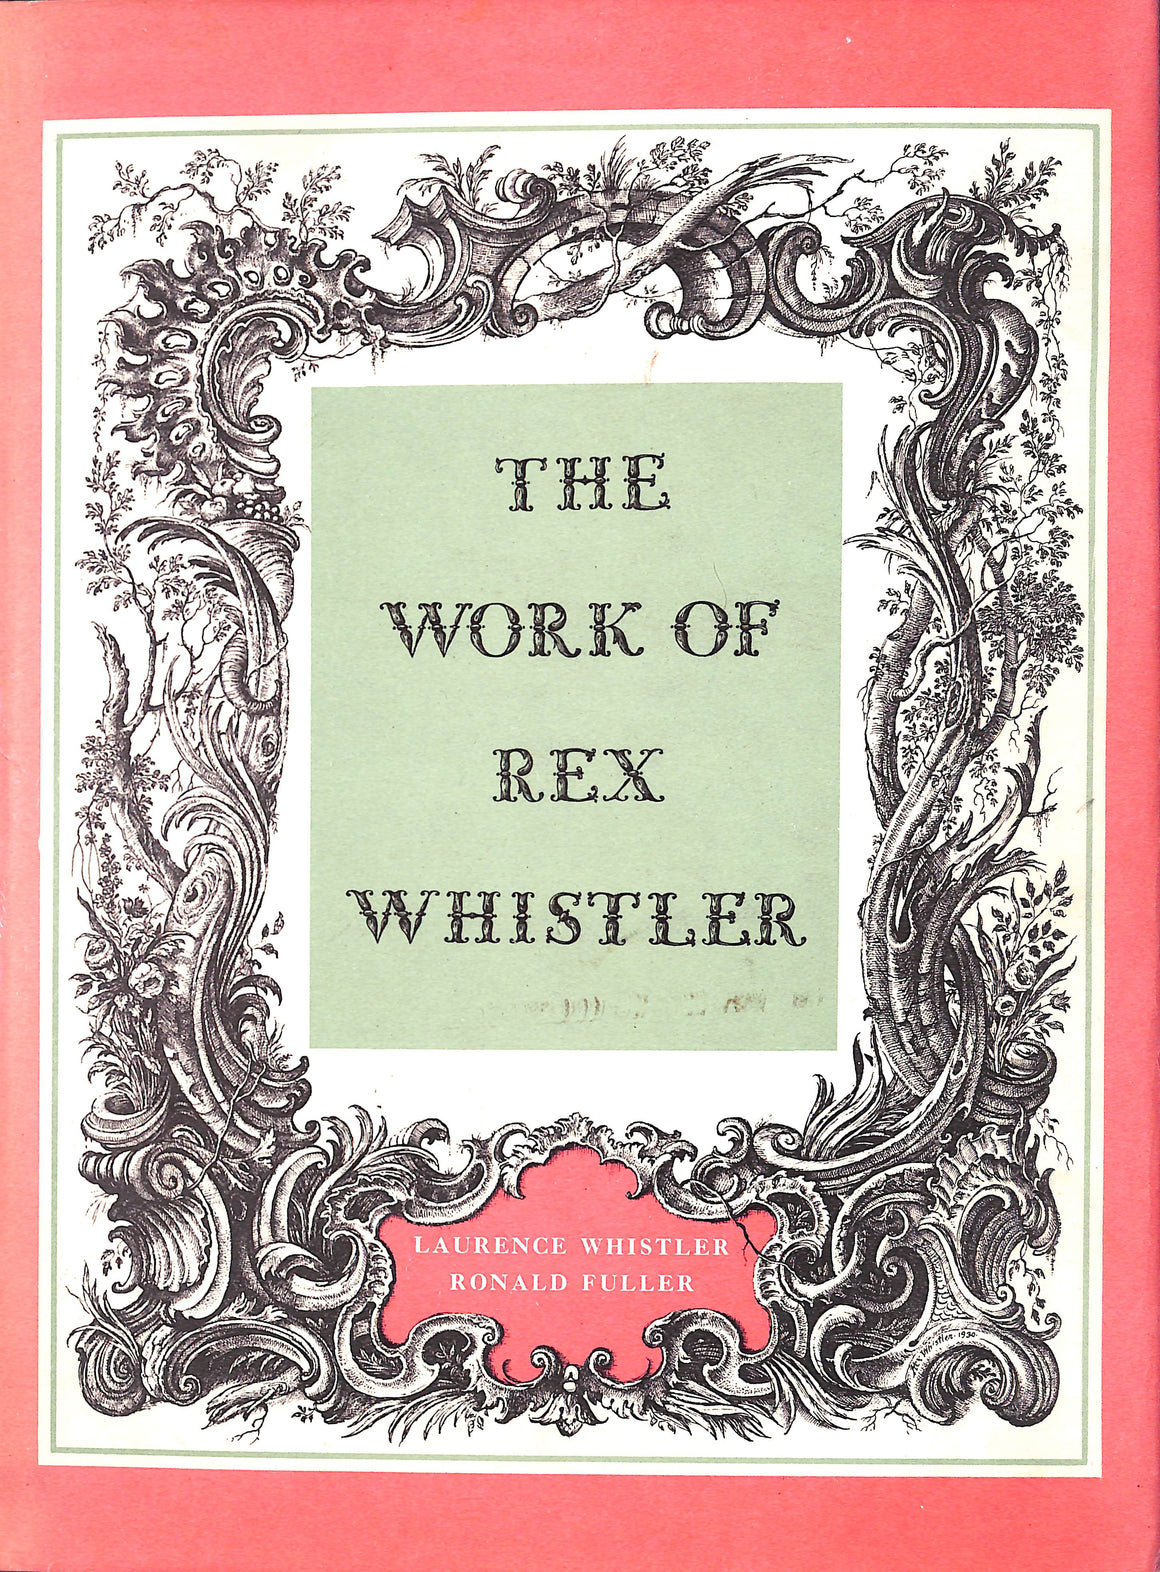 The Work of Rex Whistler' 1960 by Laurence Whistler